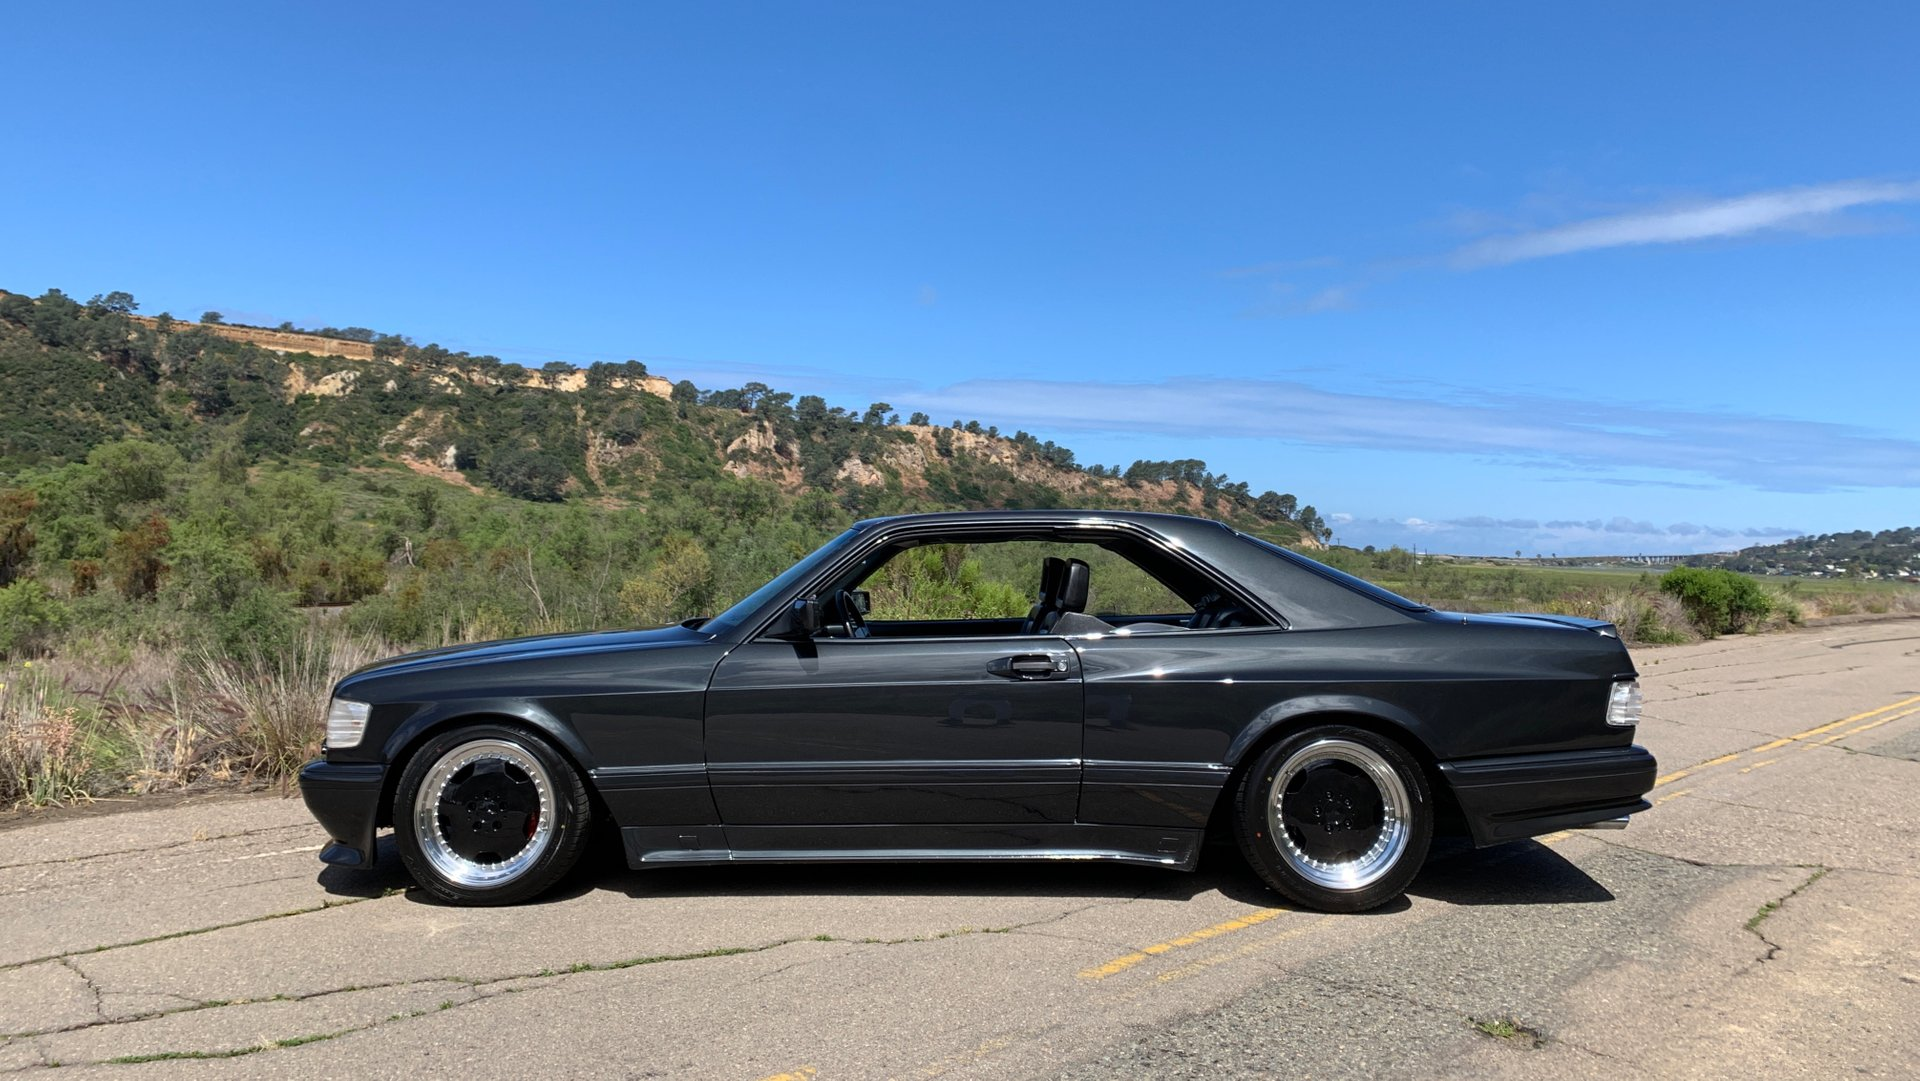 1990 Mercedes-Benz 560SEC 6 0 AMG Widebody for sale #164696